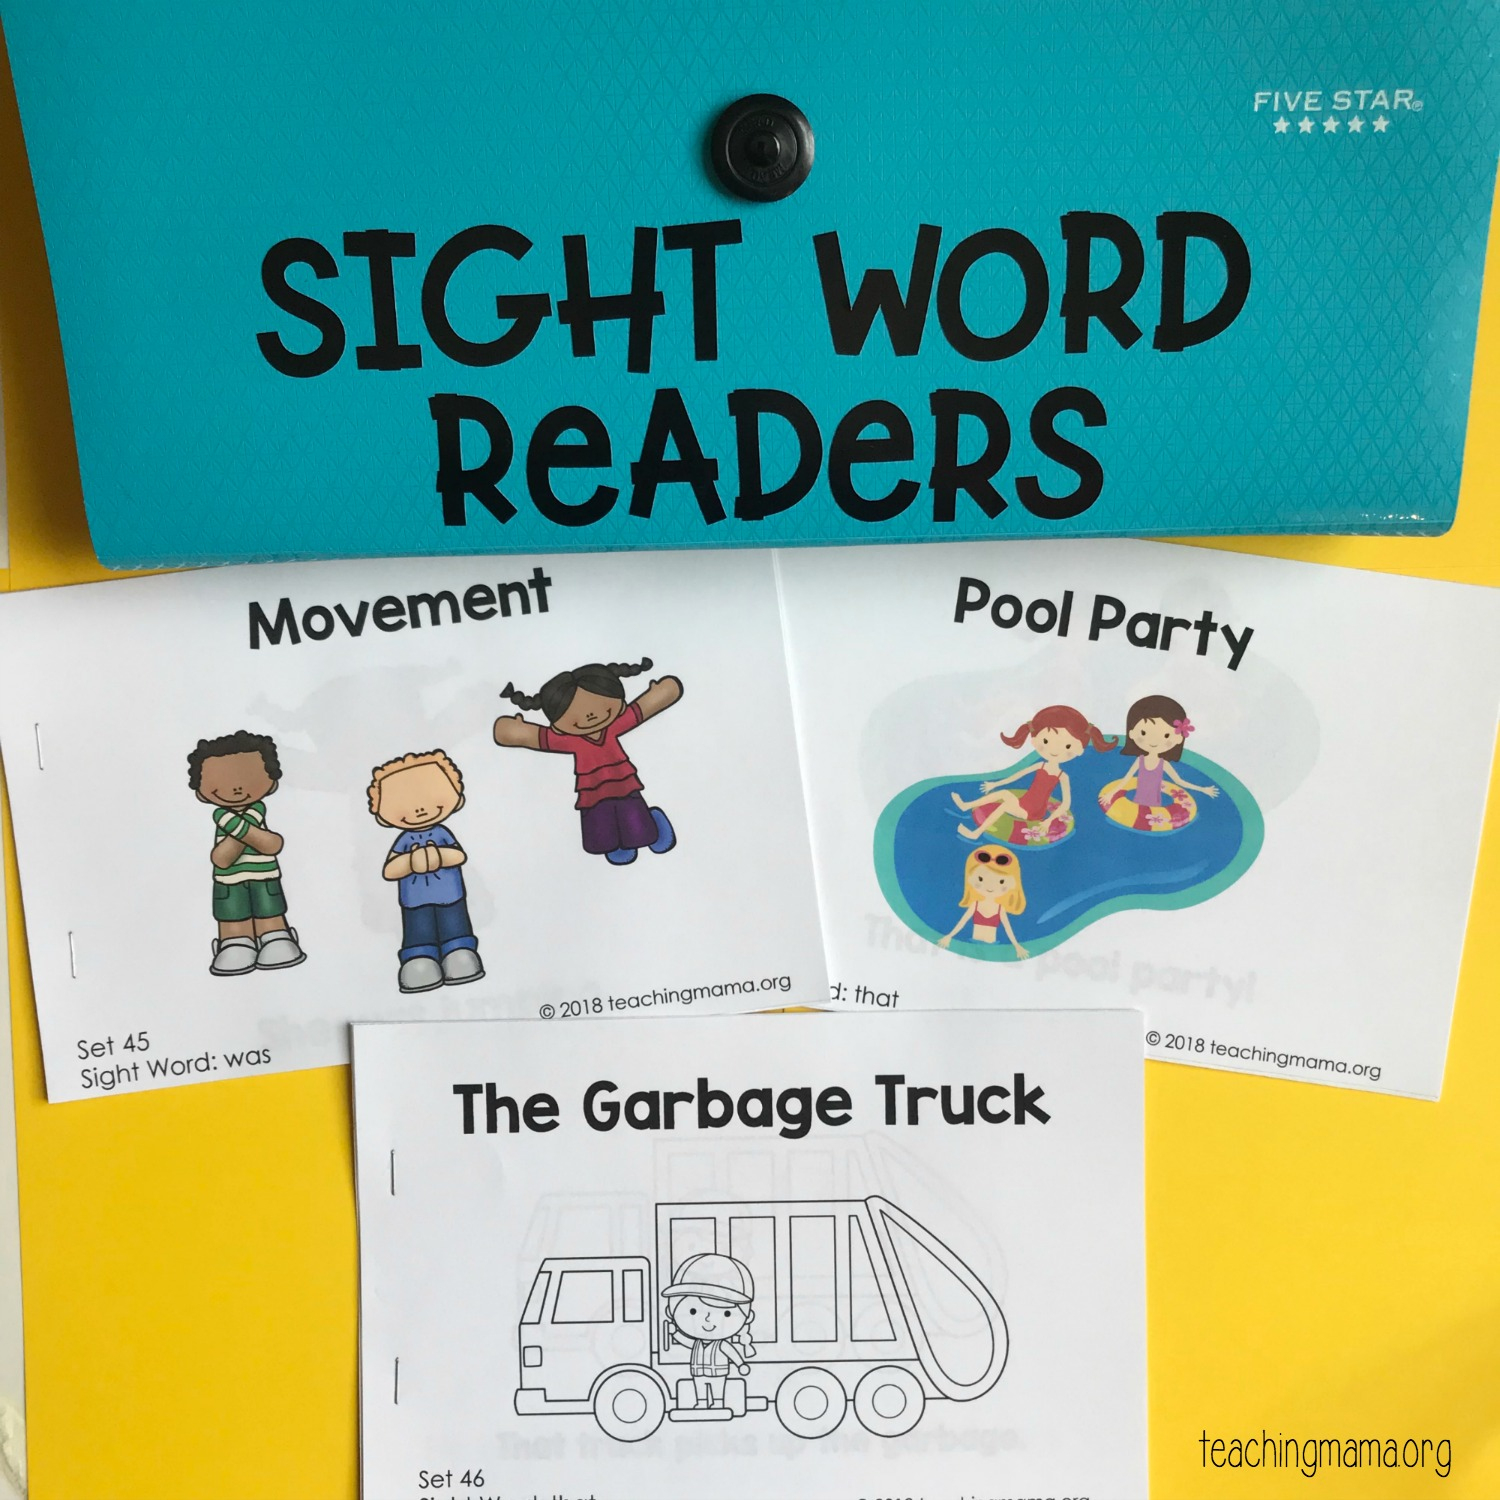 Sight Word Readers - Free Printable Sight Word Books